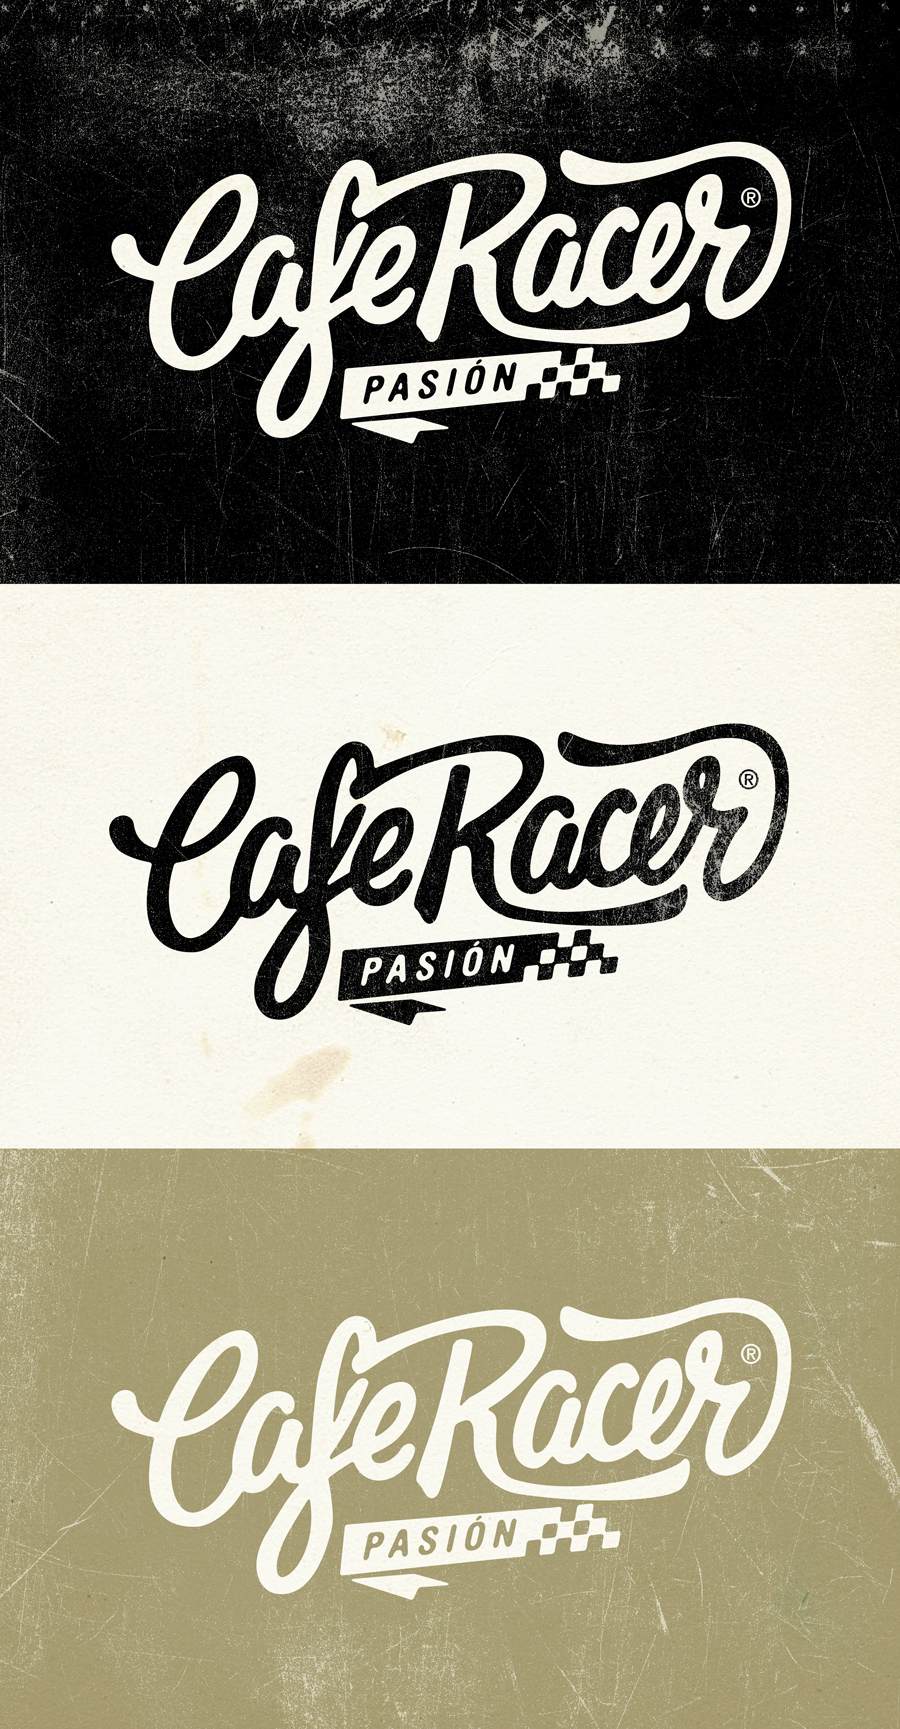 Cafe-Racer-logo-®ARM